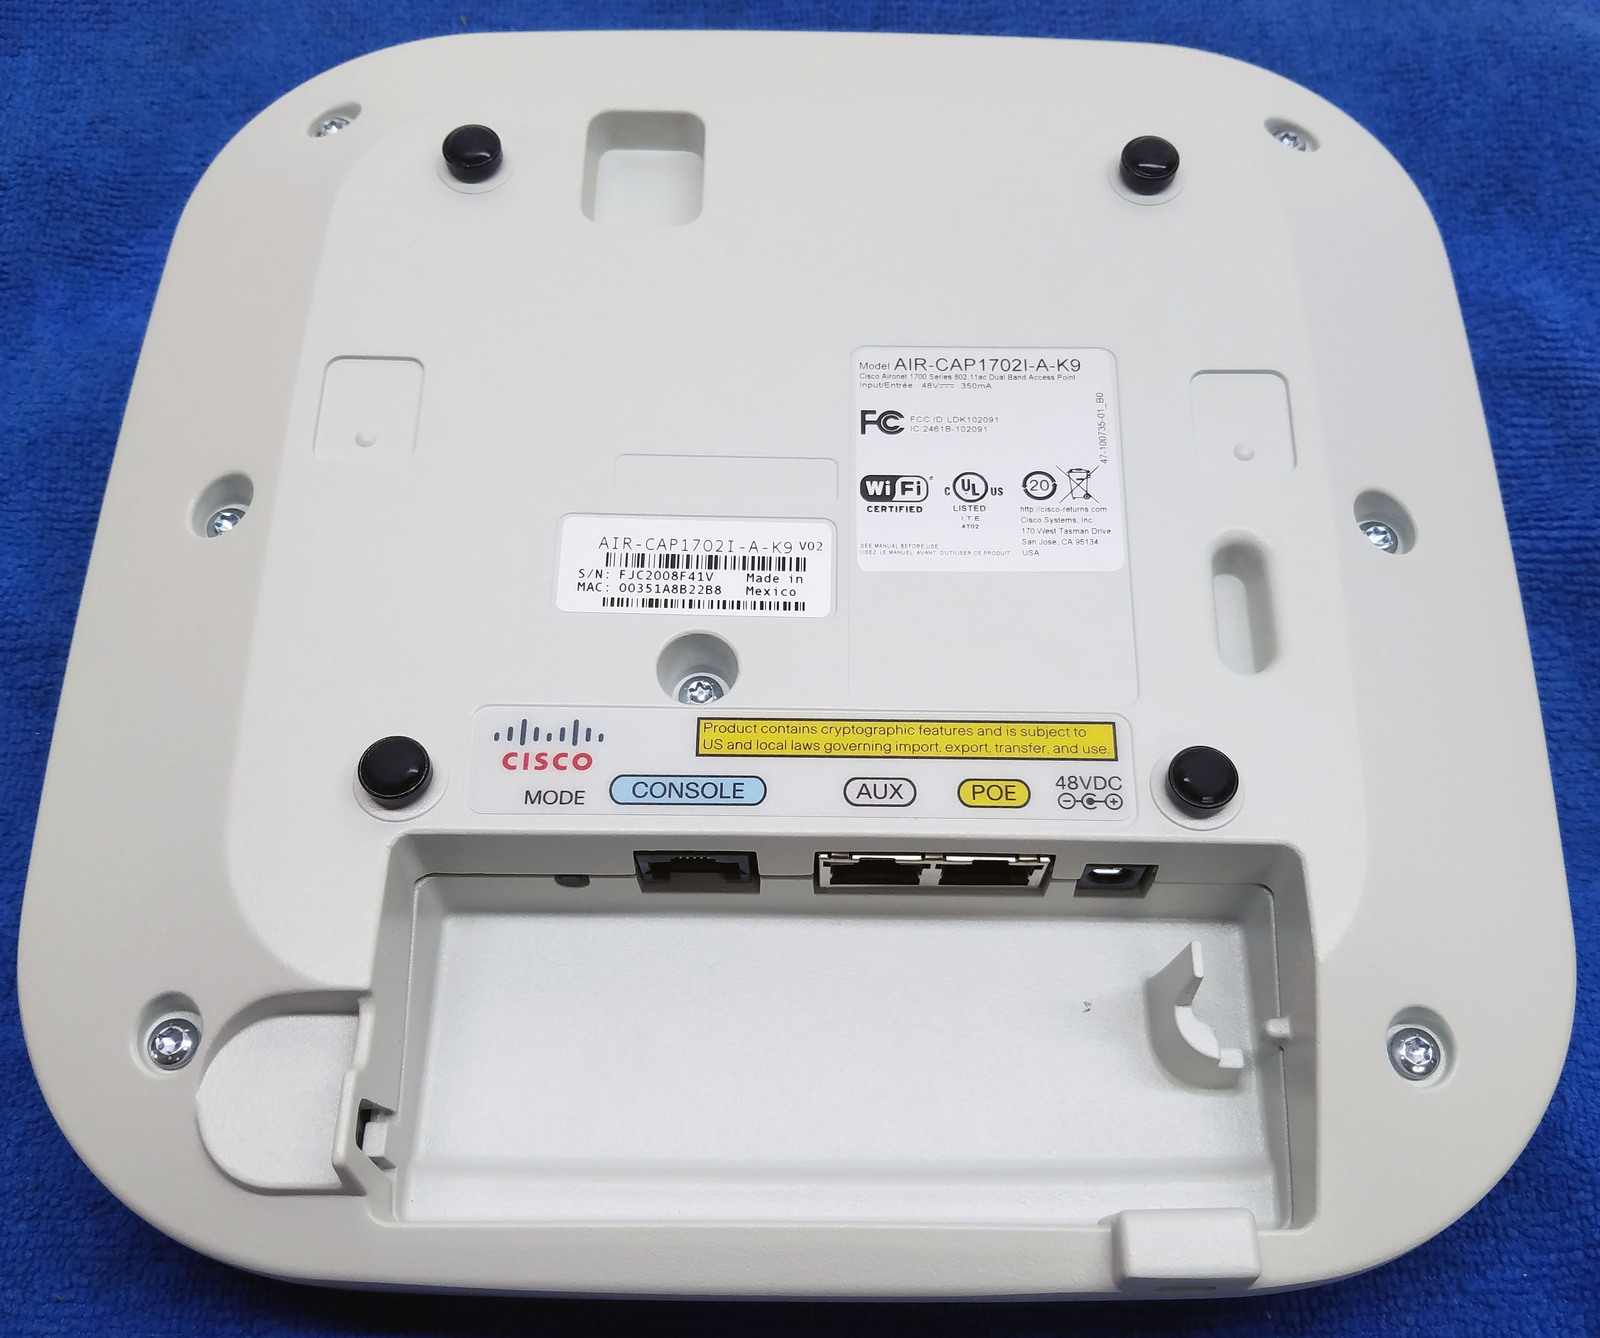 Cisco Aironet 1700 Series Air-Cap1702I-A-K9 Bin:2